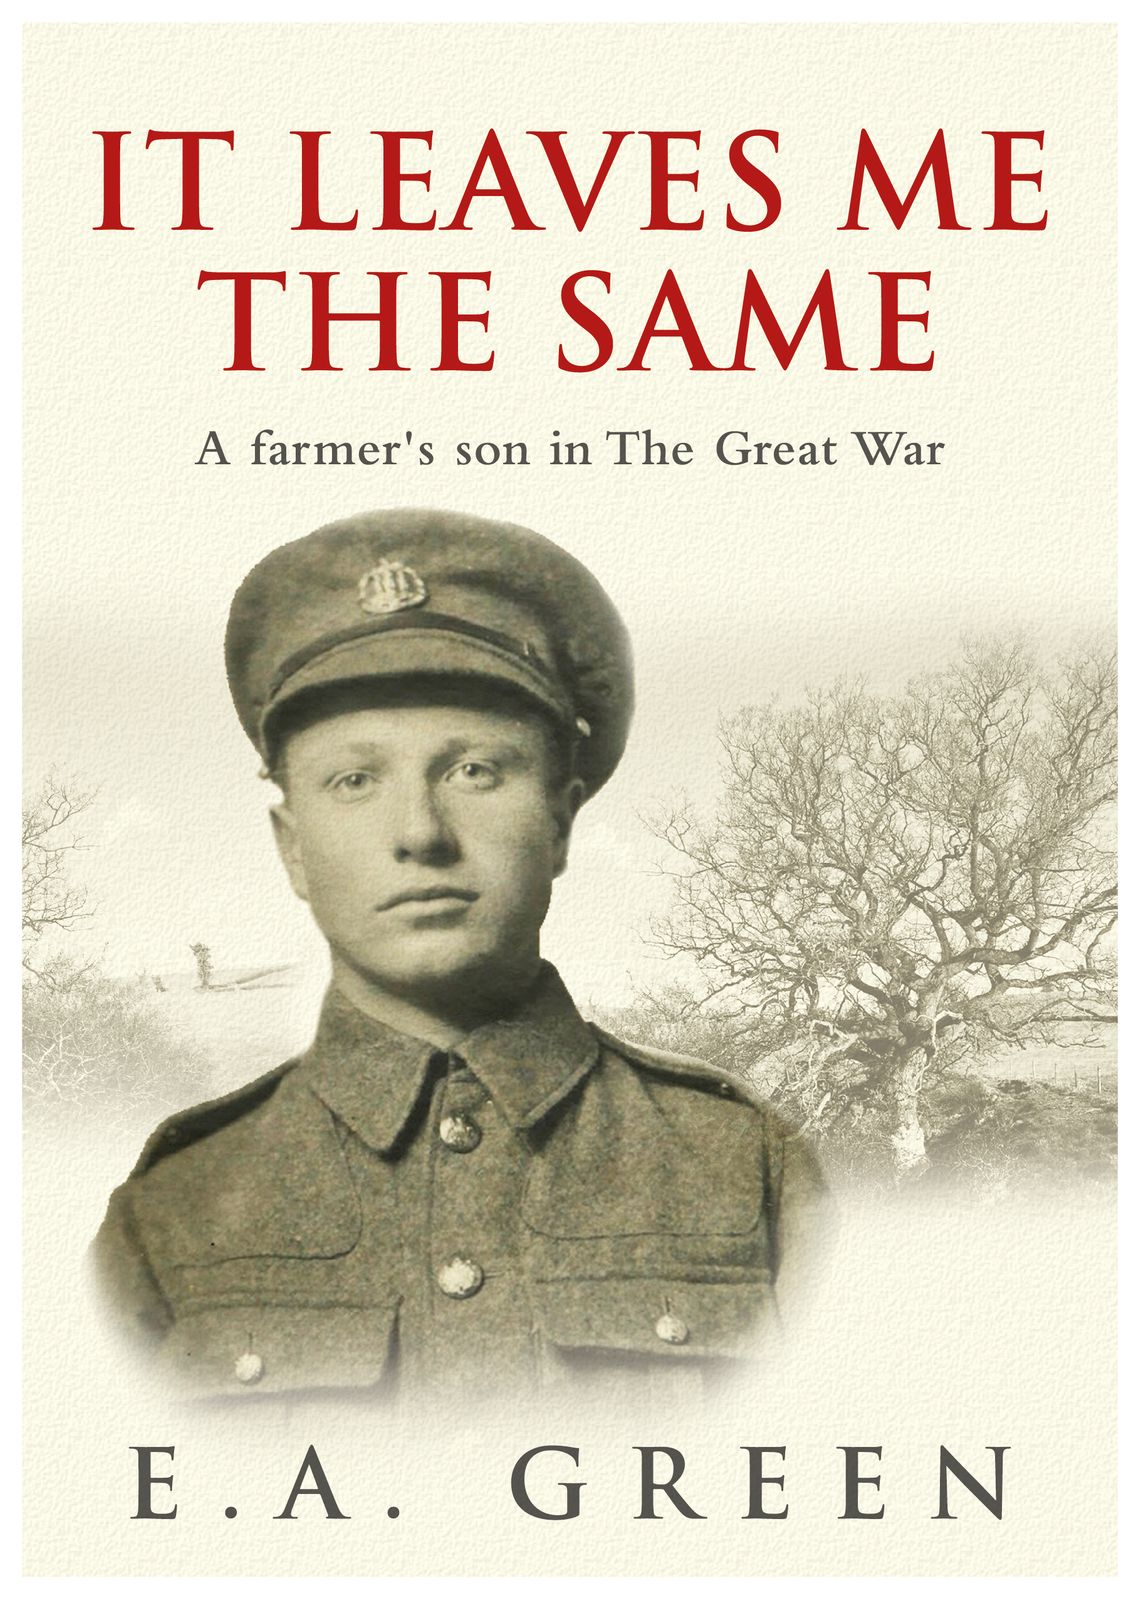 It Leaves Me The Same: A farmer's son in The Great War